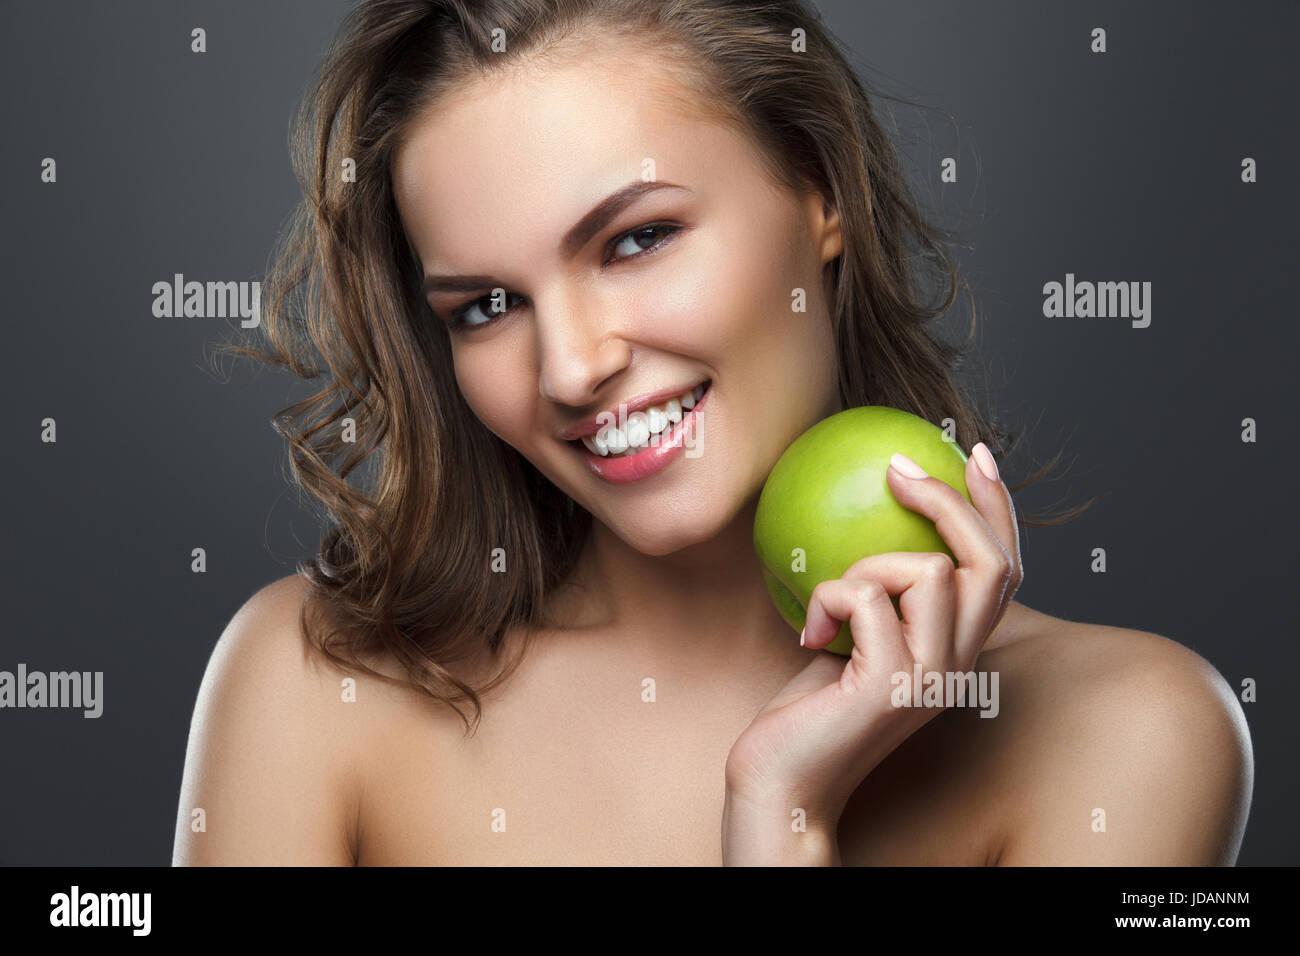 Beautiful Girl Holding Fashion Beauty Magazine Stock Image: Oral B Stock Photos & Oral B Stock Images